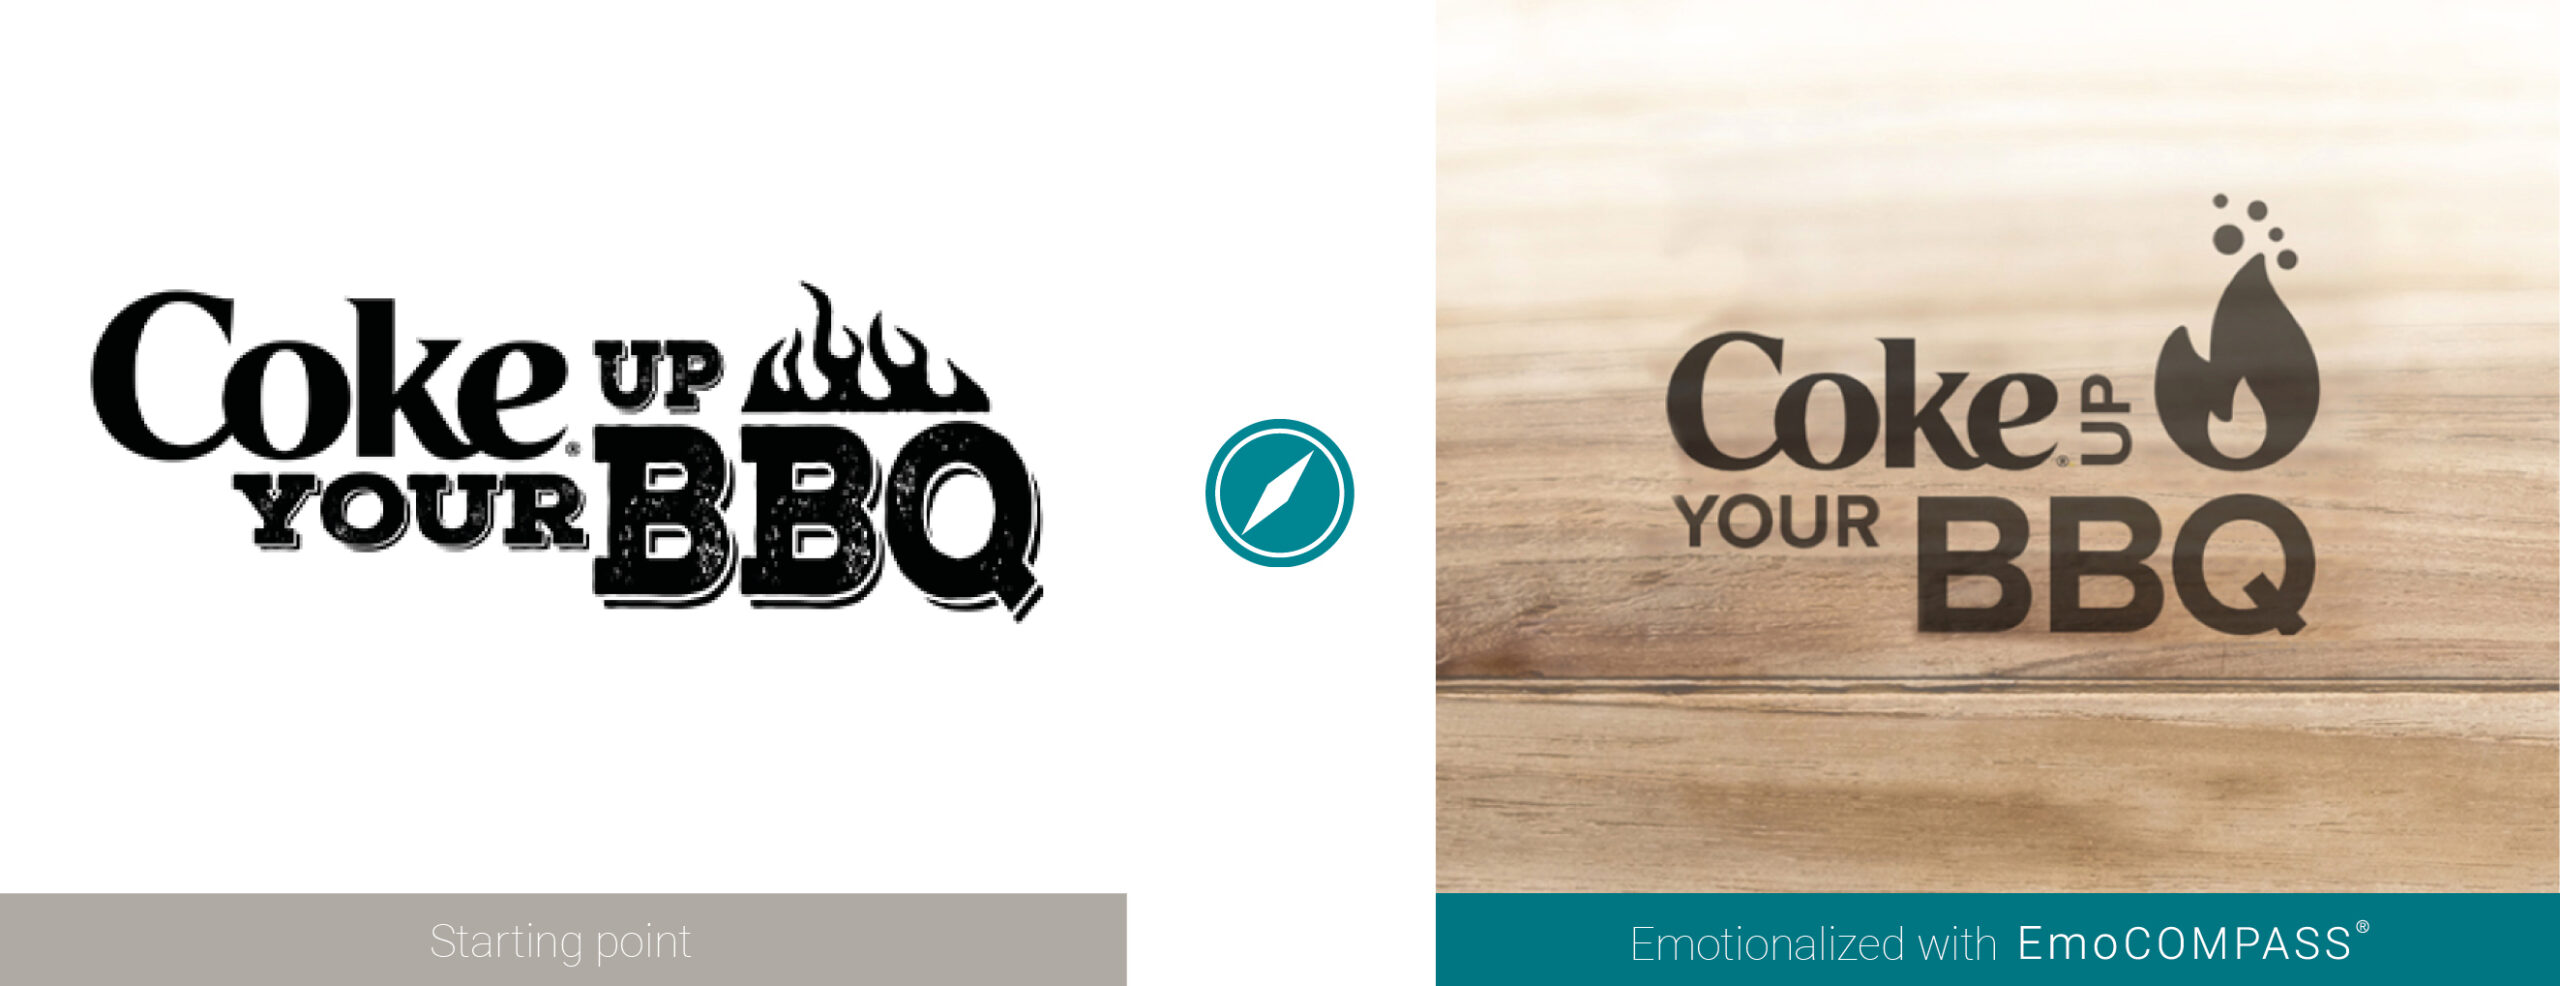 Before and after comparison Promo Logo Coke up your BBQ